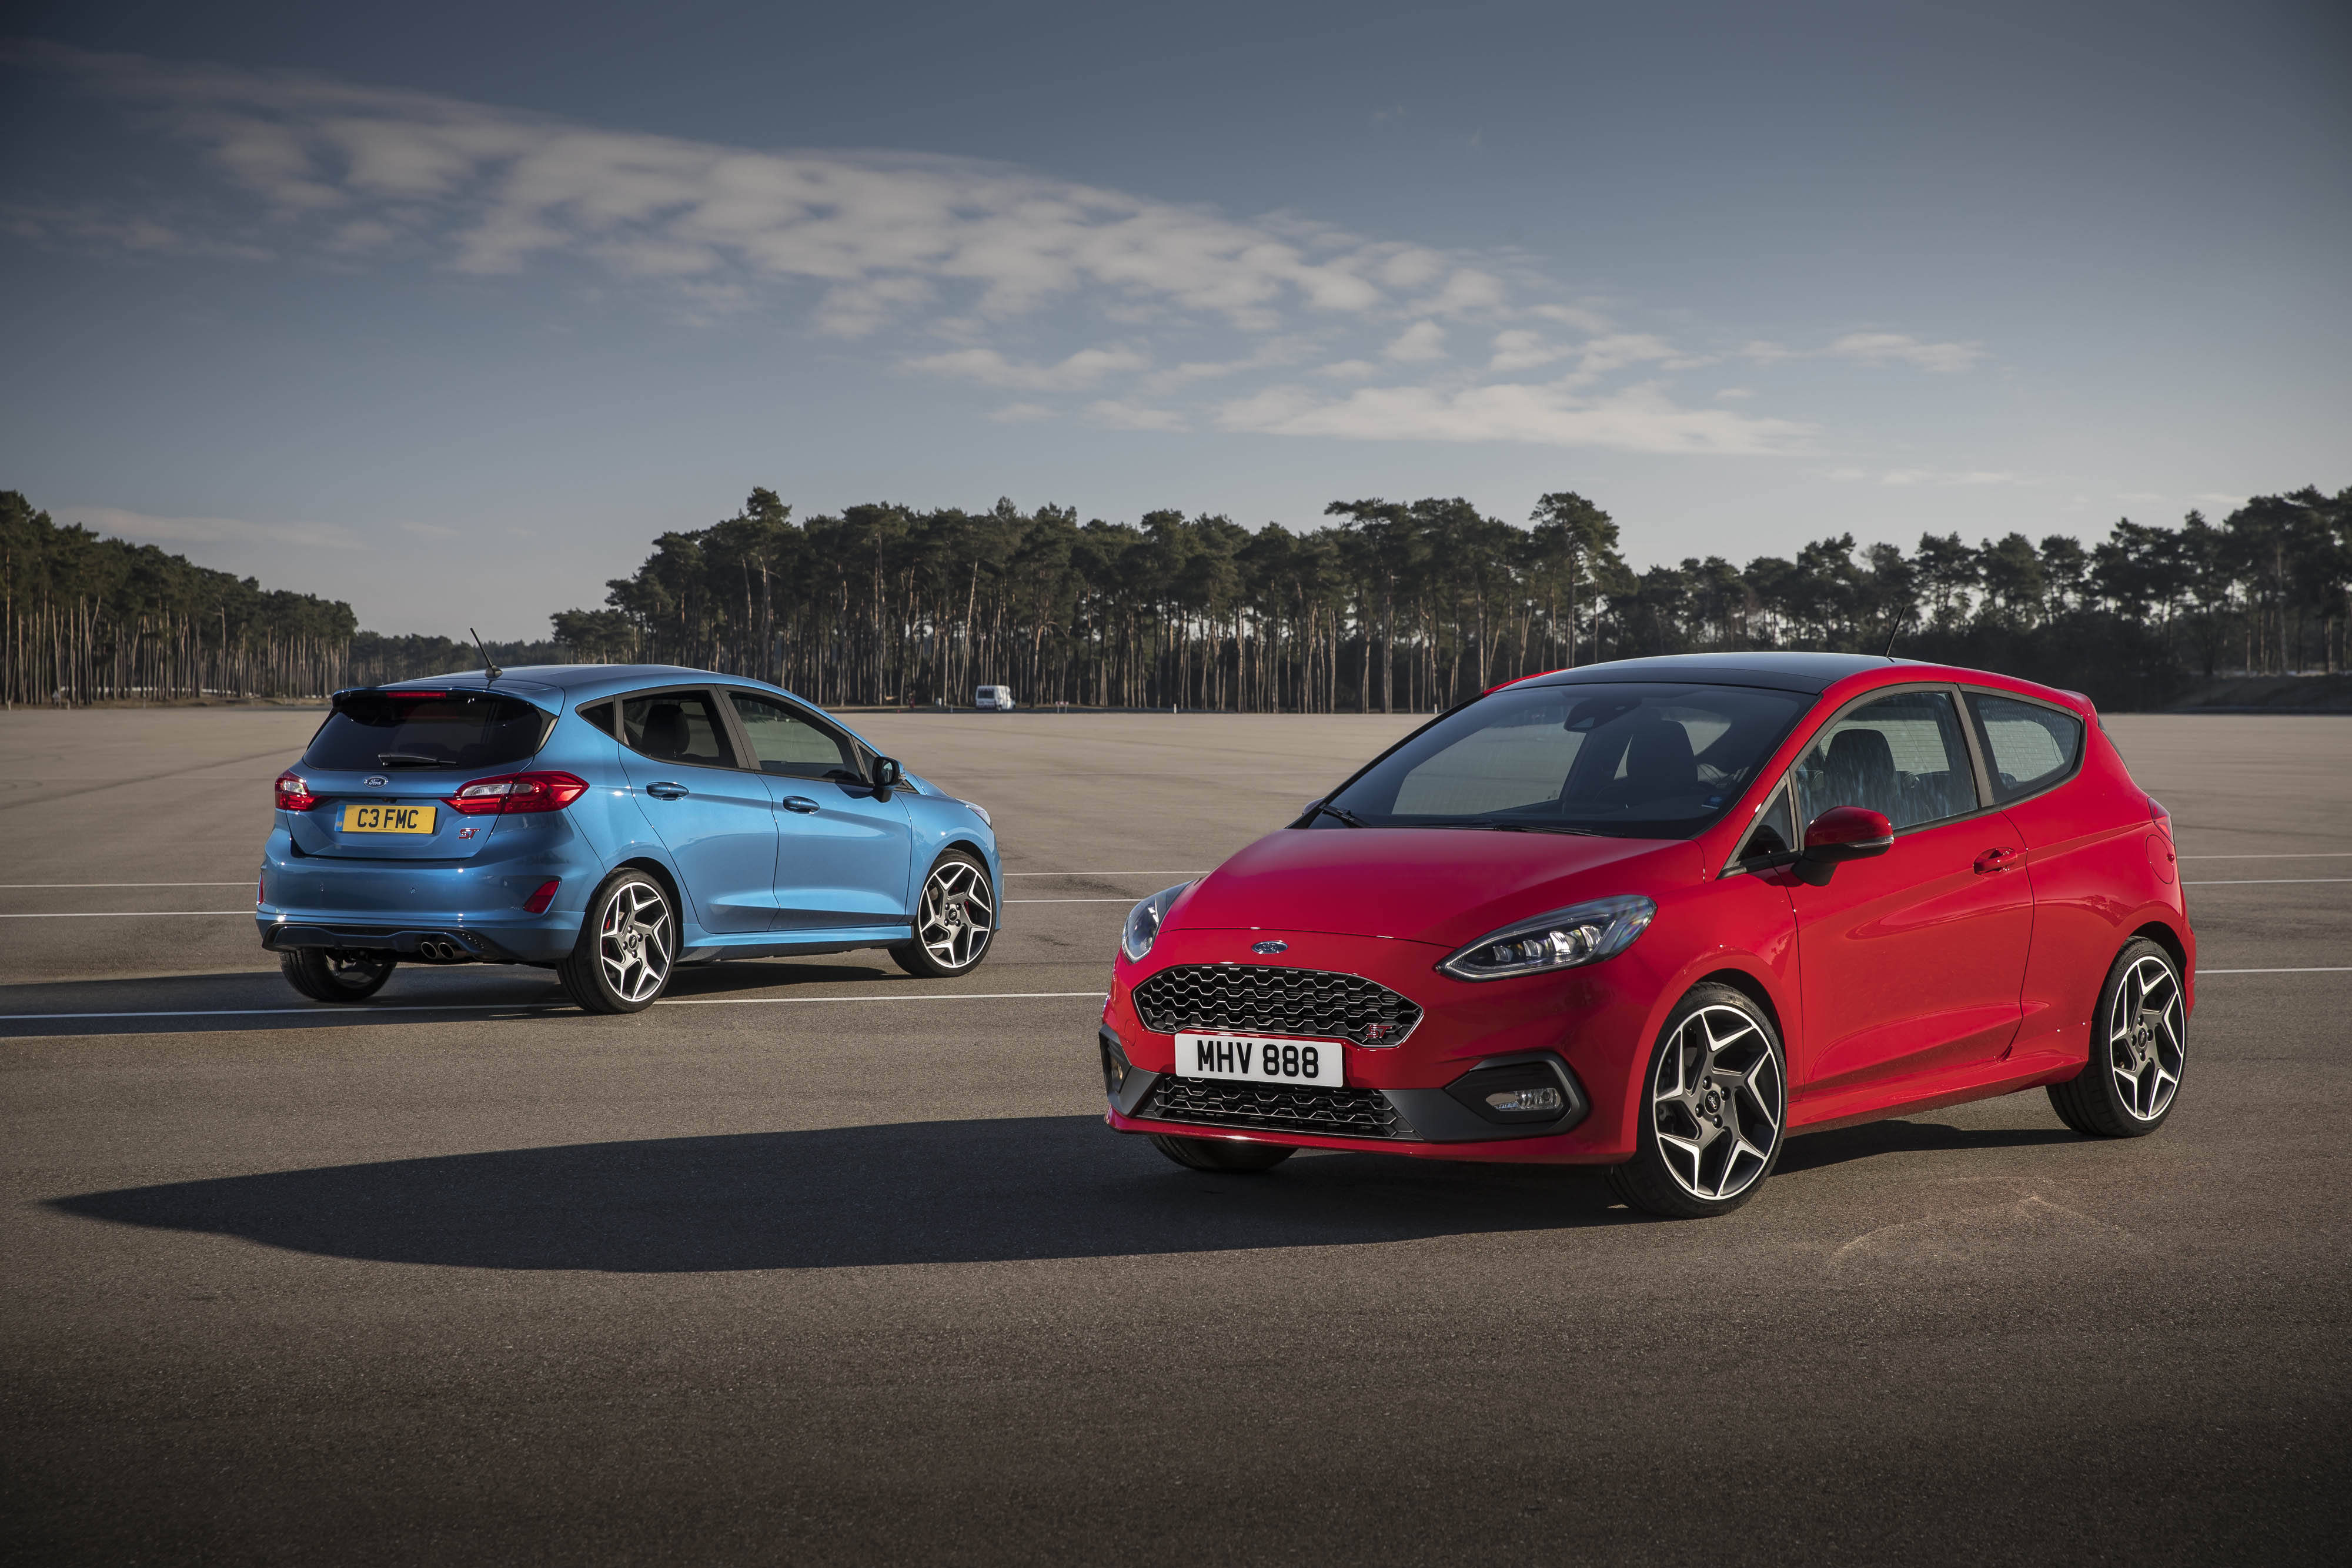 Ford Fiesta St 2018 Ford Fiesta St Price Announced Starts At Eur 22 100